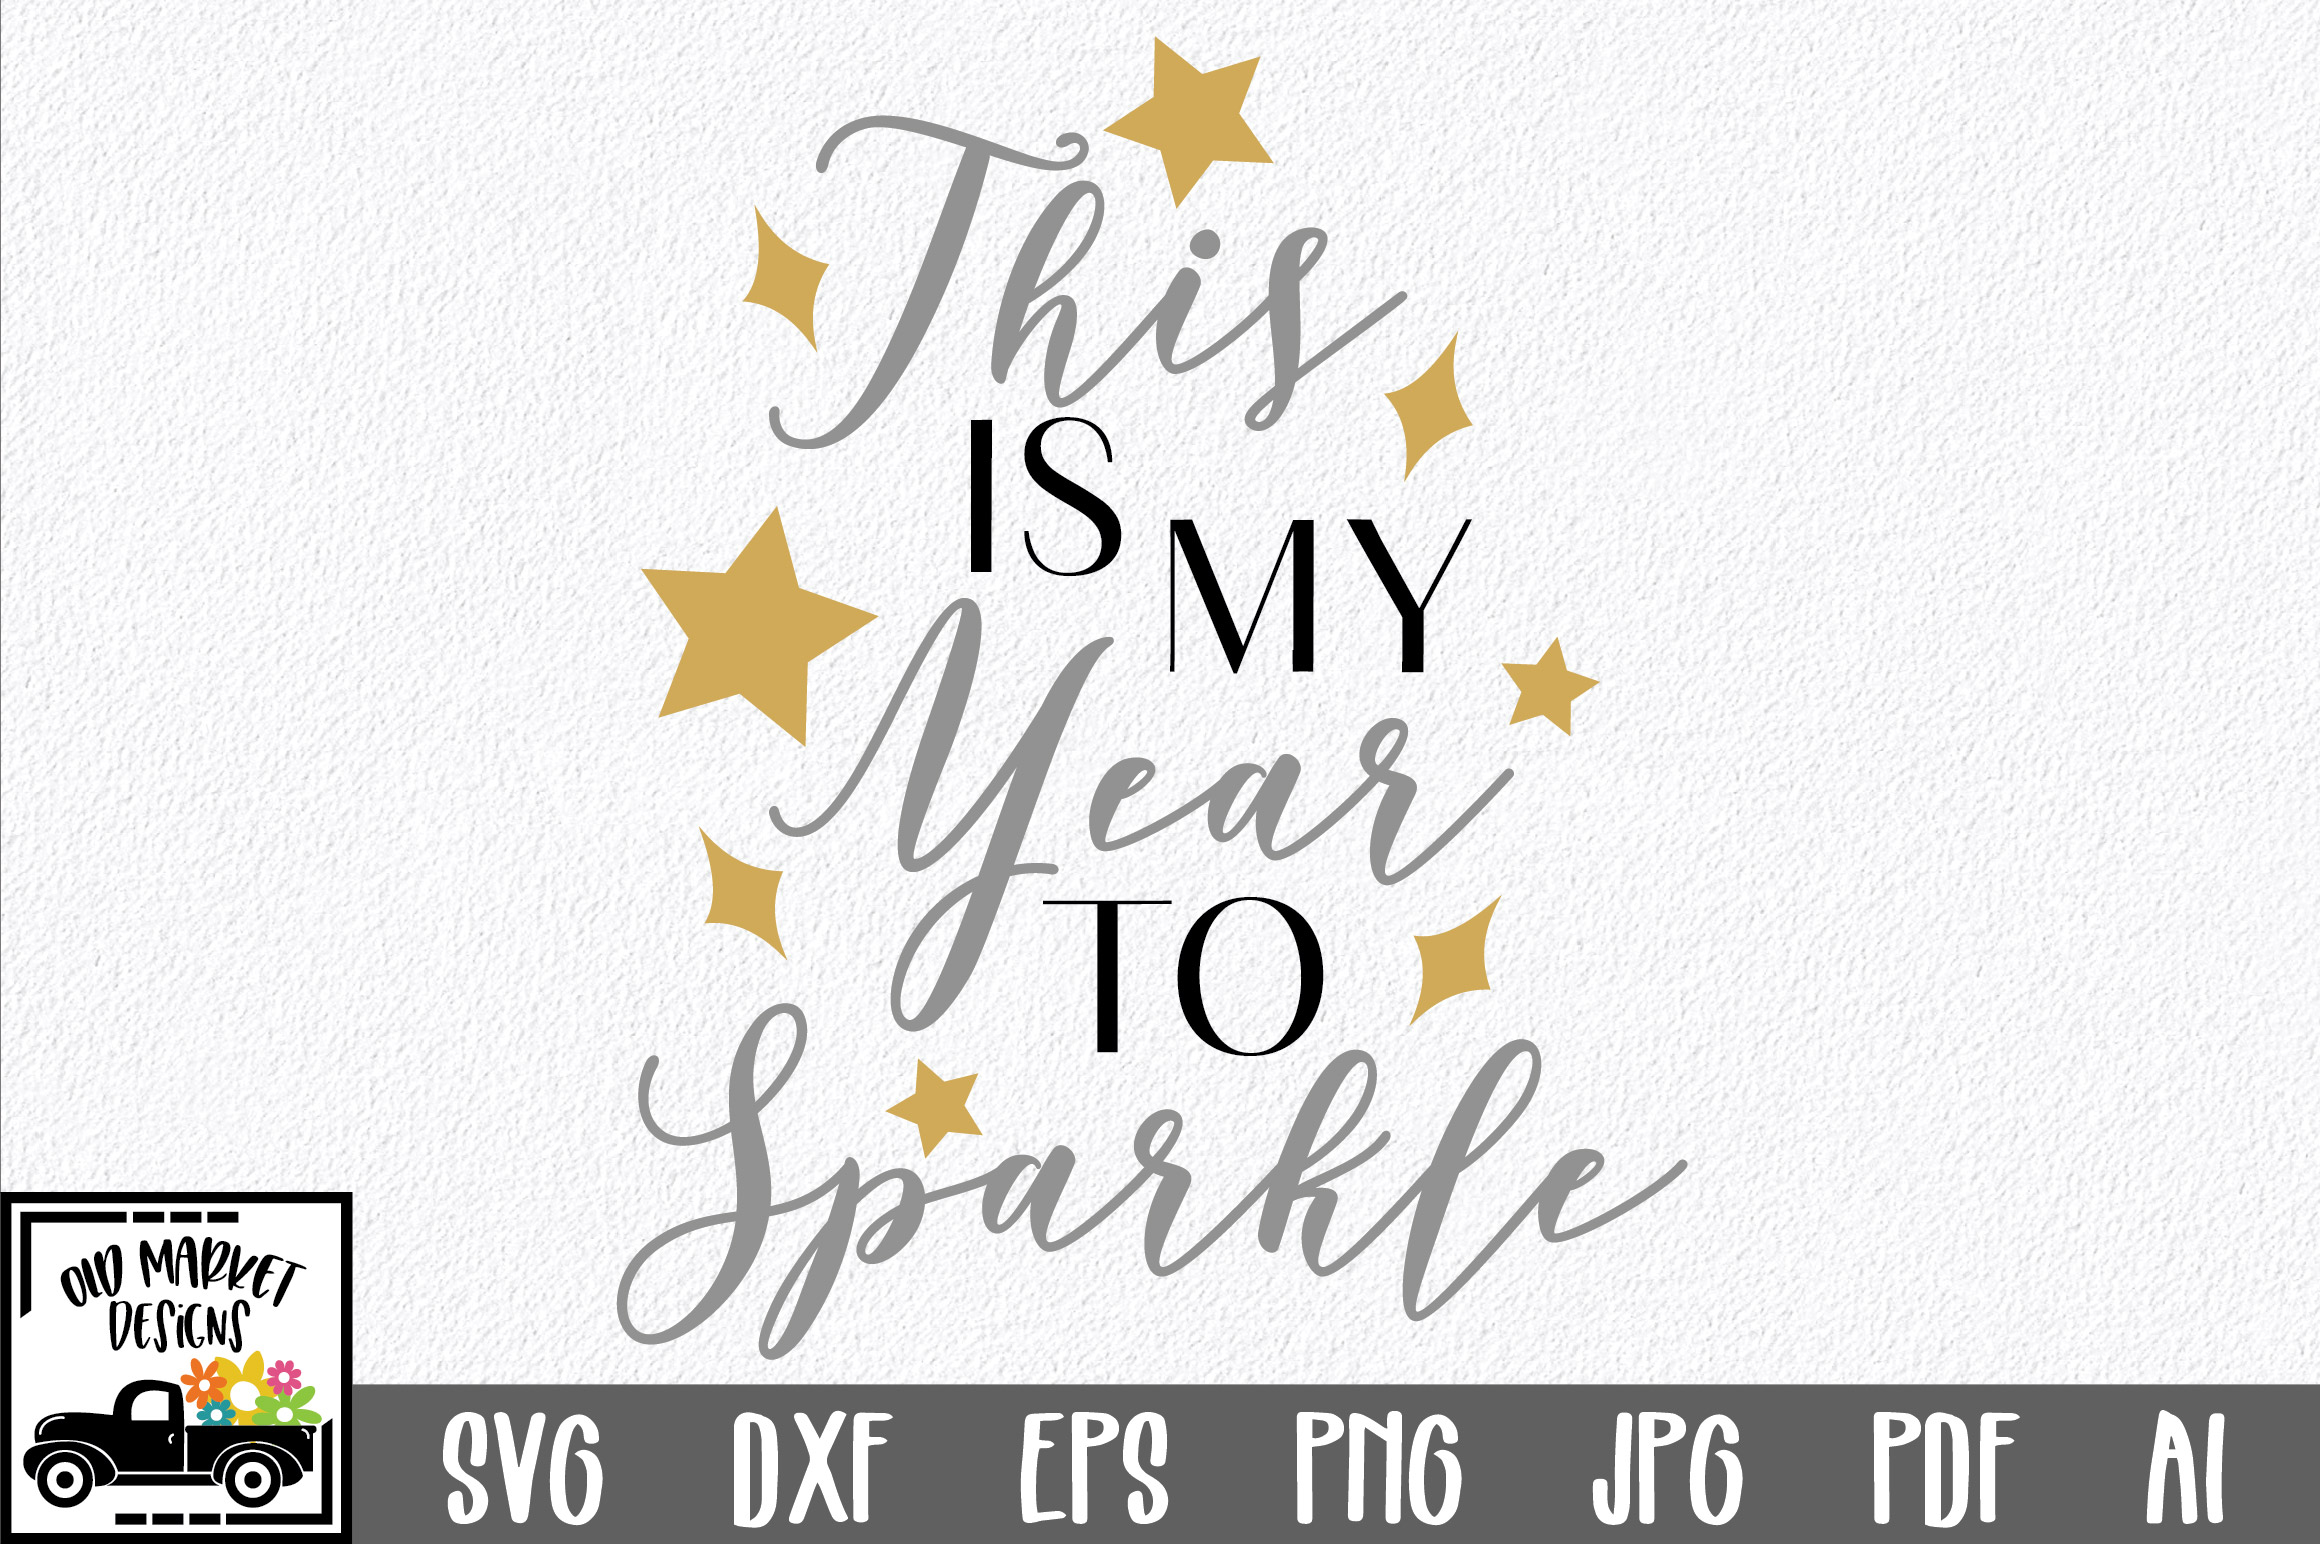 Download Free This Is My Year To Sparkle Svg Cut File Graphic By Oldmarketdesigns Creative Fabrica for Cricut Explore, Silhouette and other cutting machines.